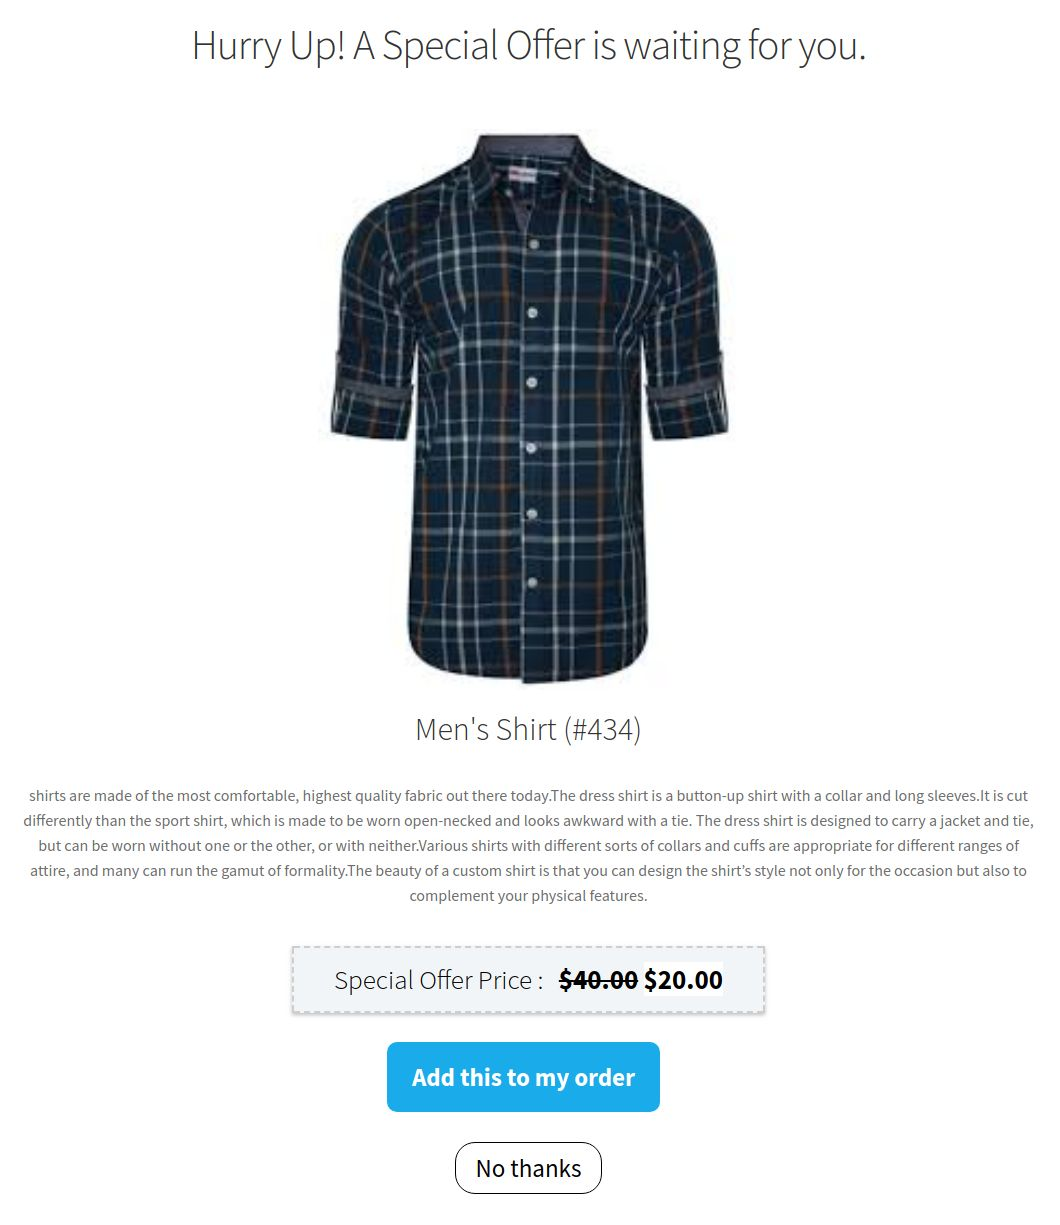 woocommerce-one-click-upsell-funnel-offer-product